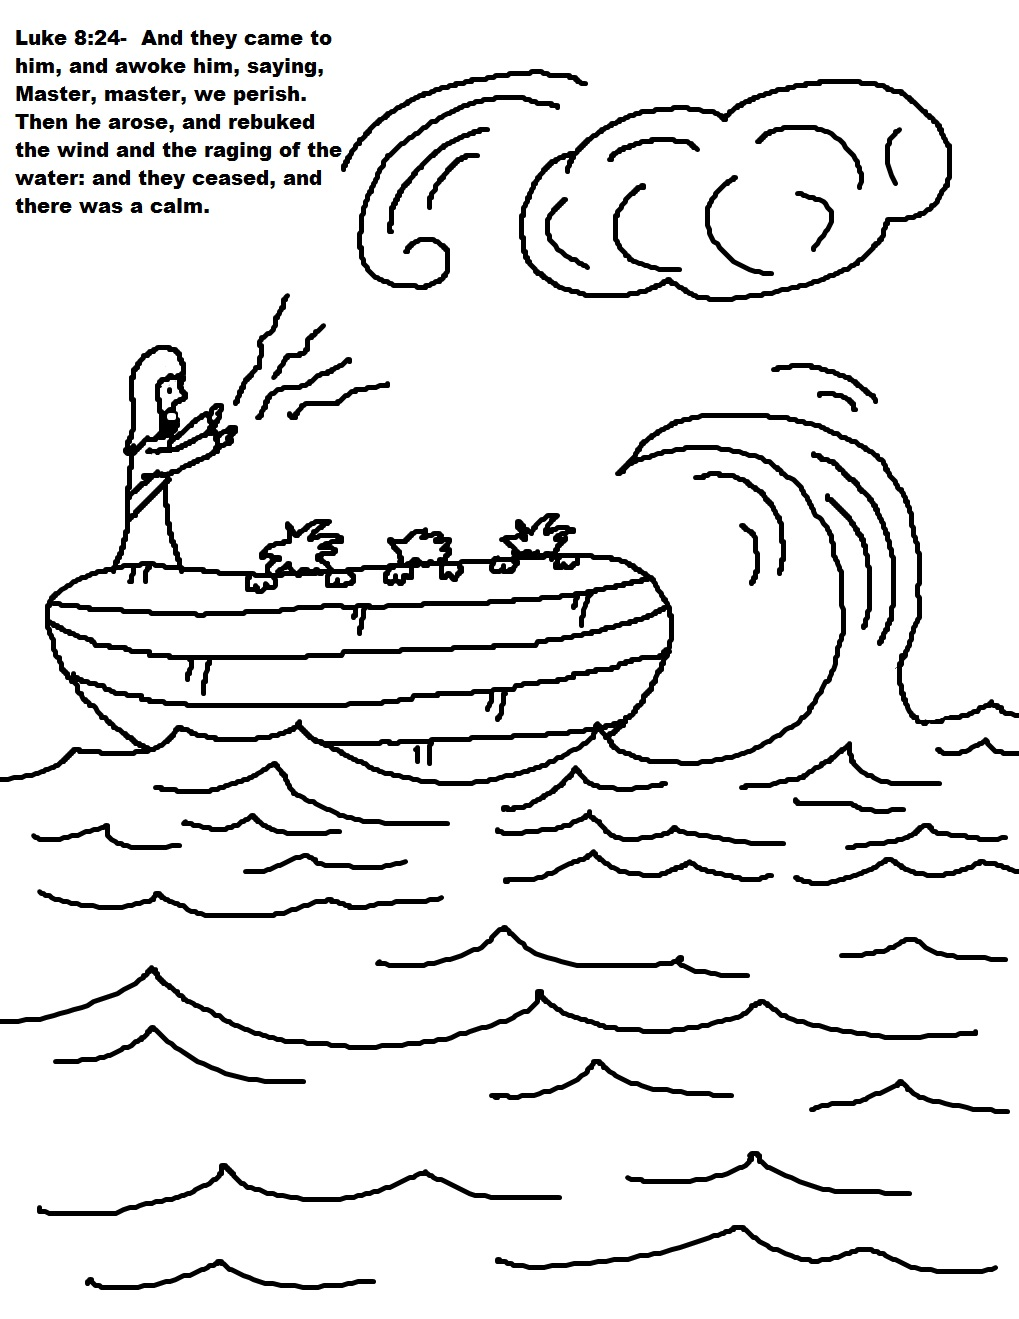 ocean storm coloring pages - photo#31